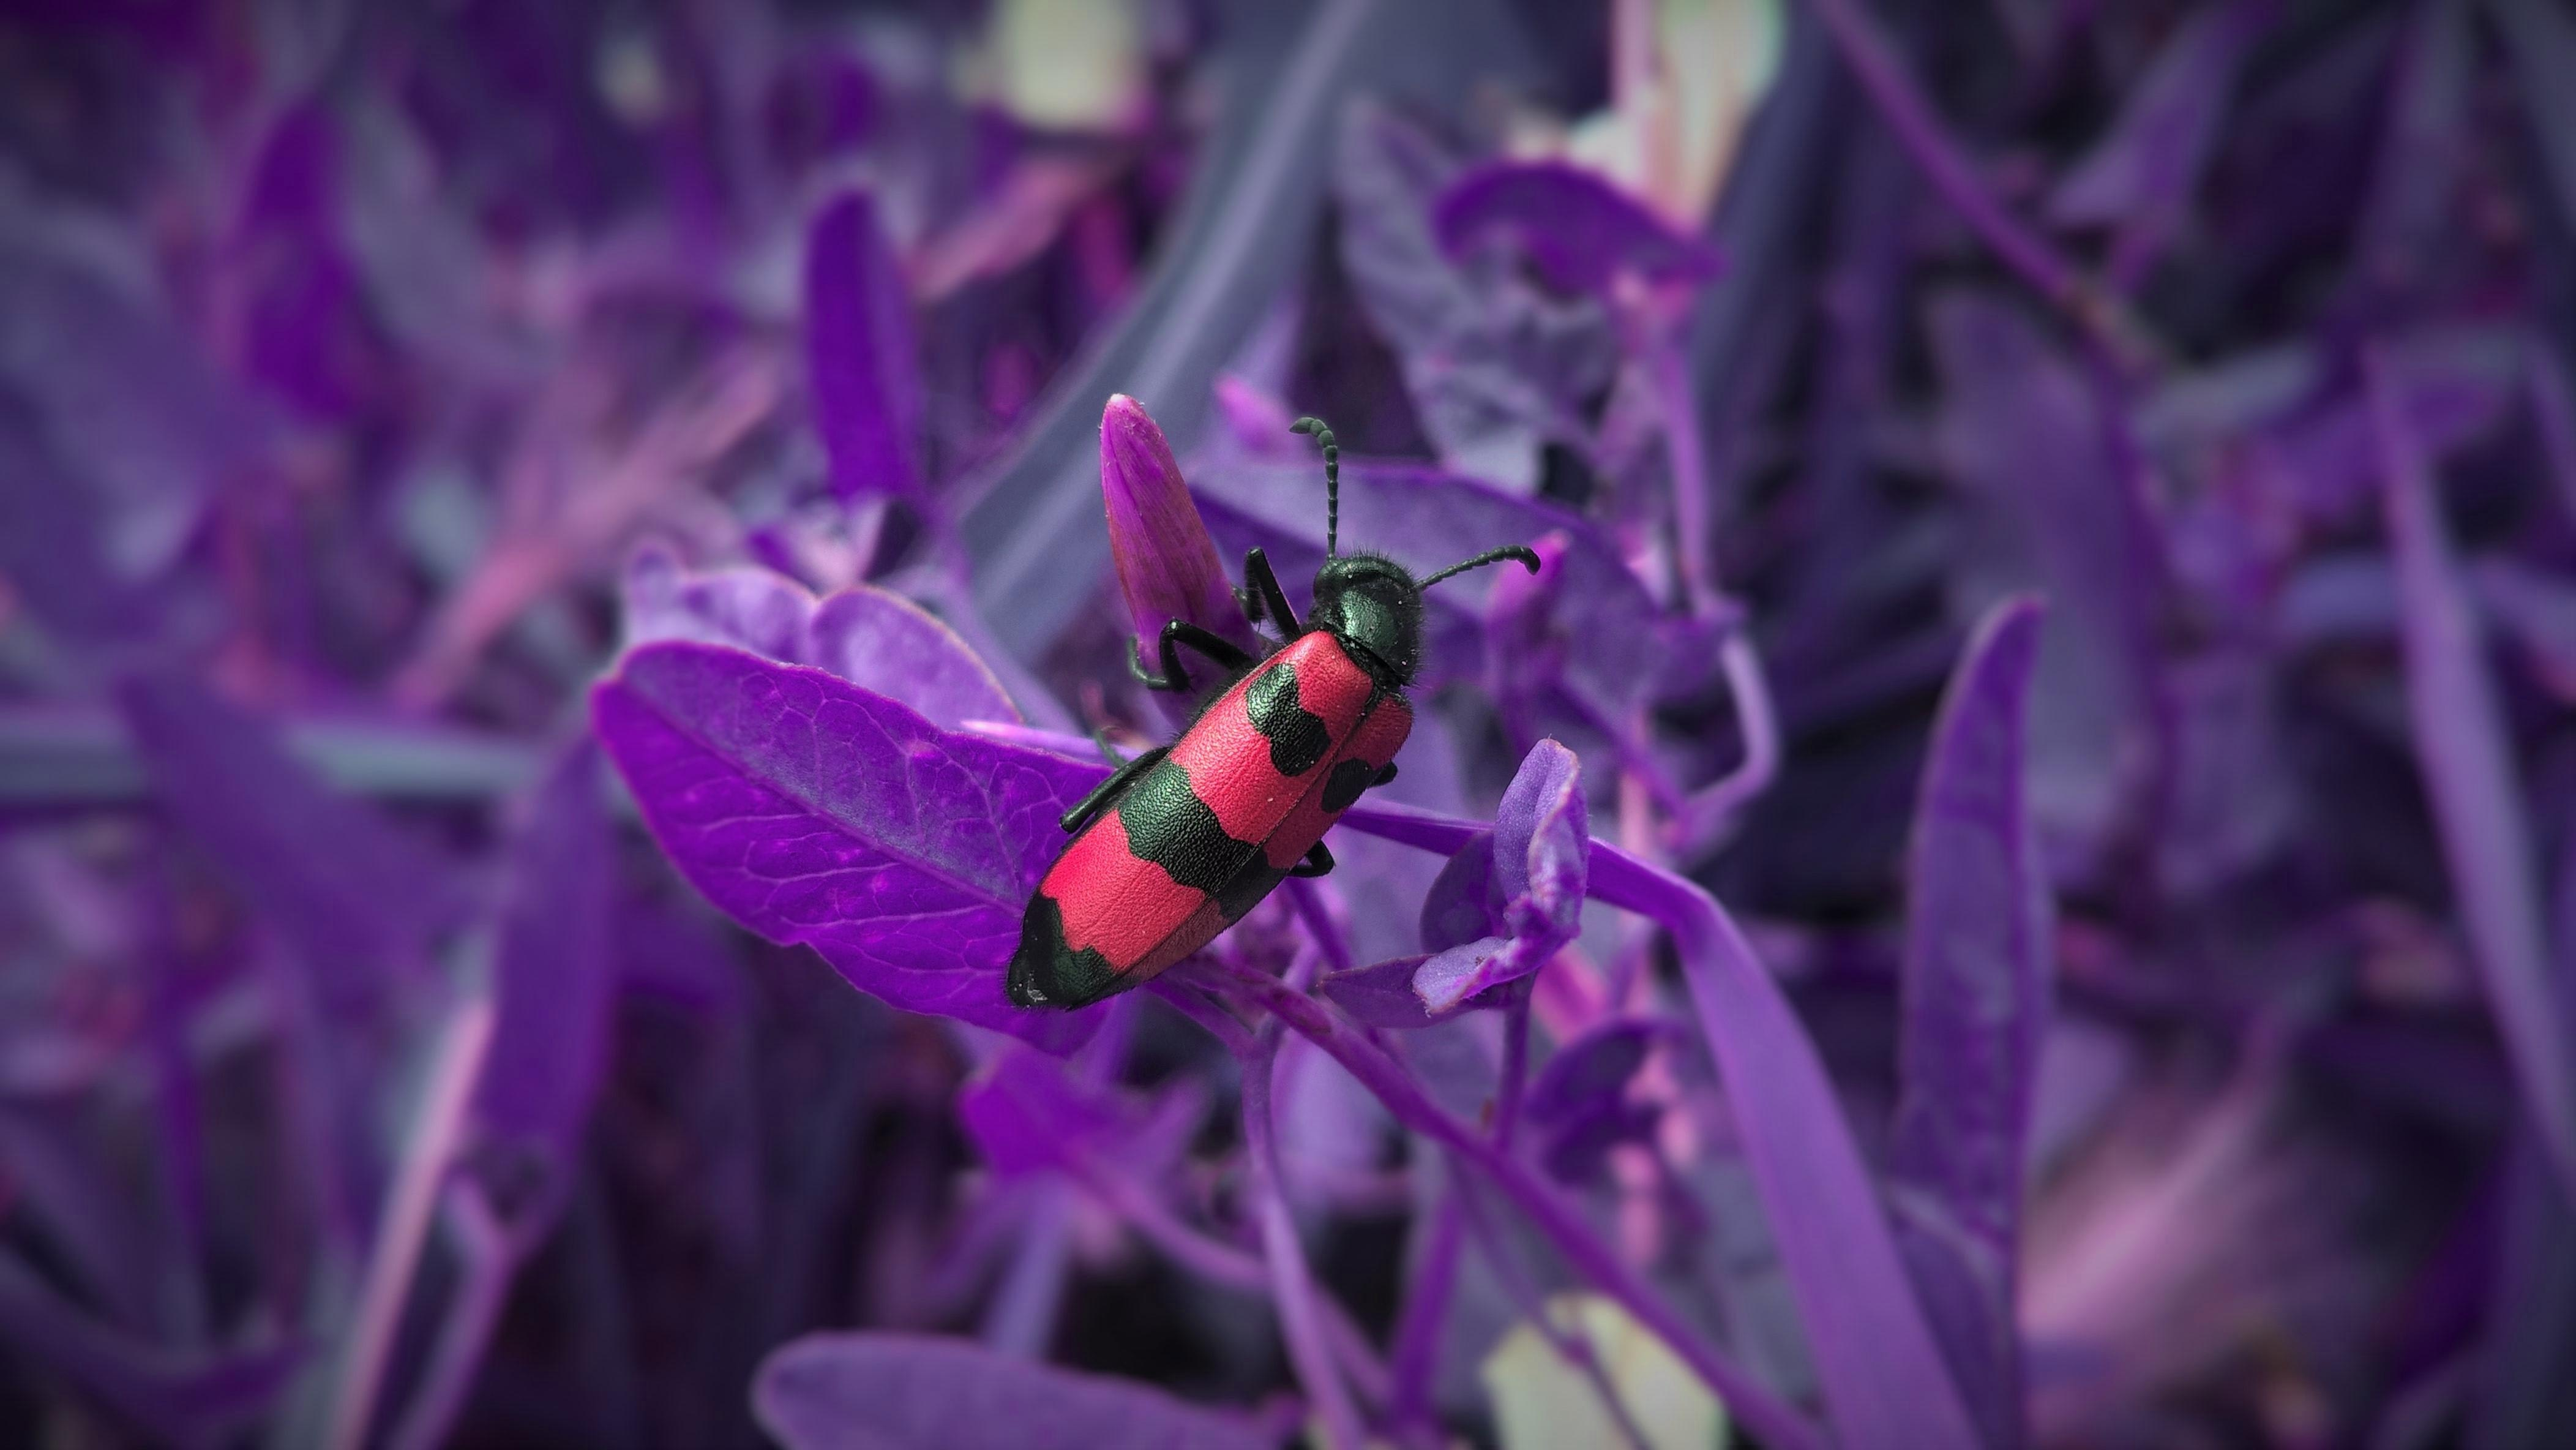 Red and black beetle climbs on purple plants in the wild